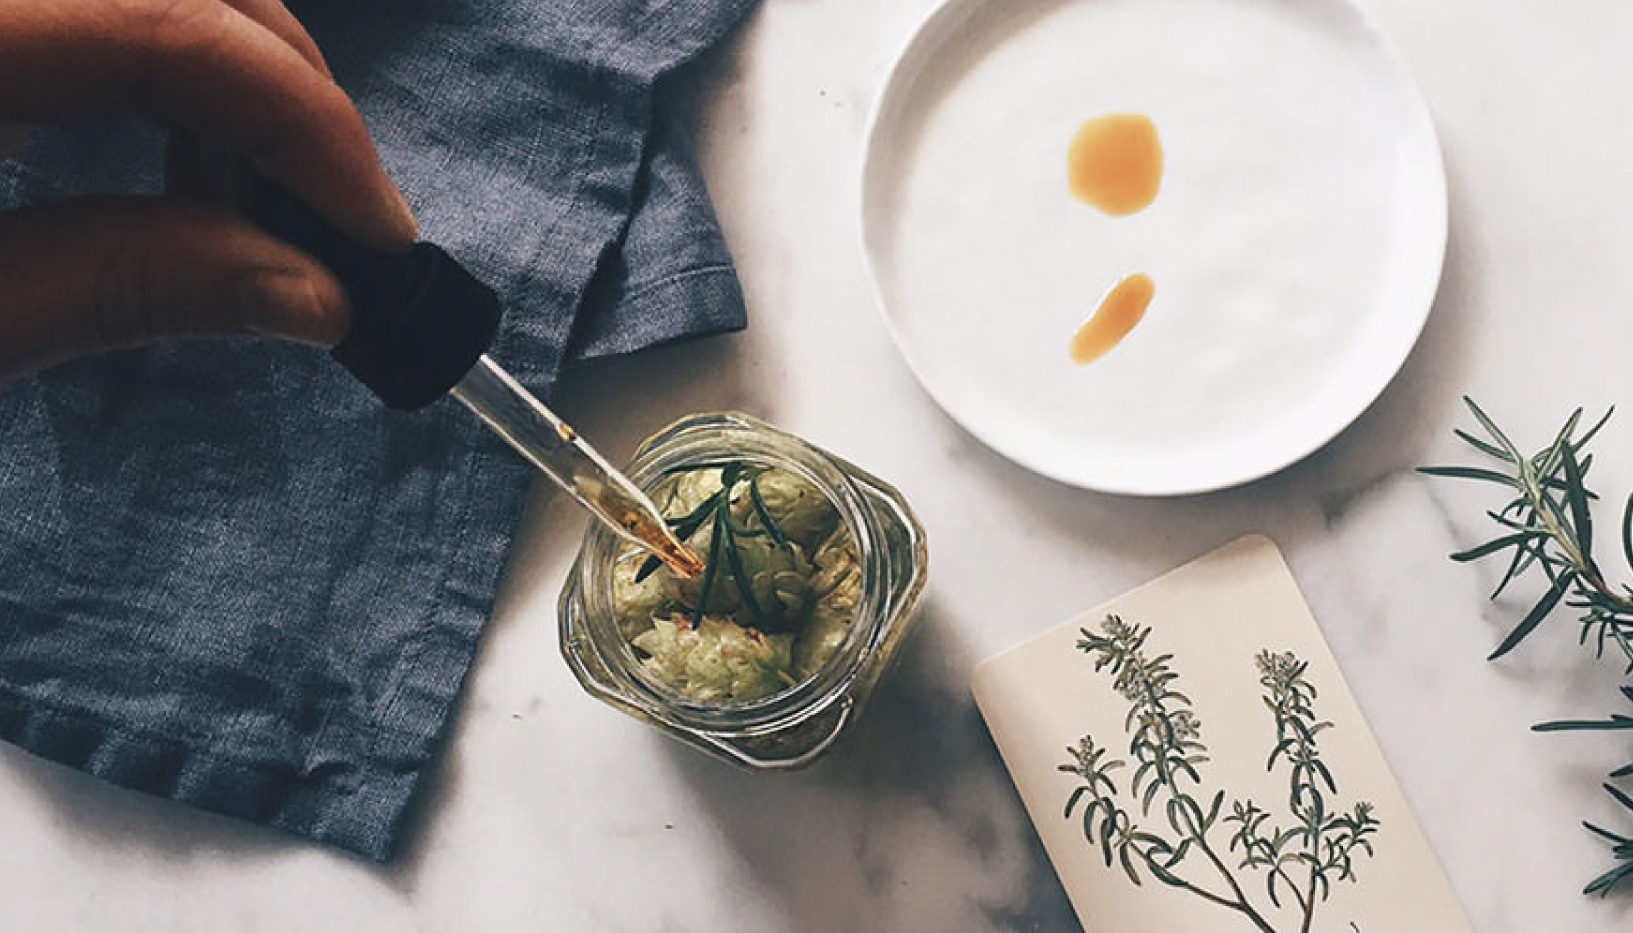 HUCKBERRY JOURNAL - Natural Remedies for Cold and Flu Season